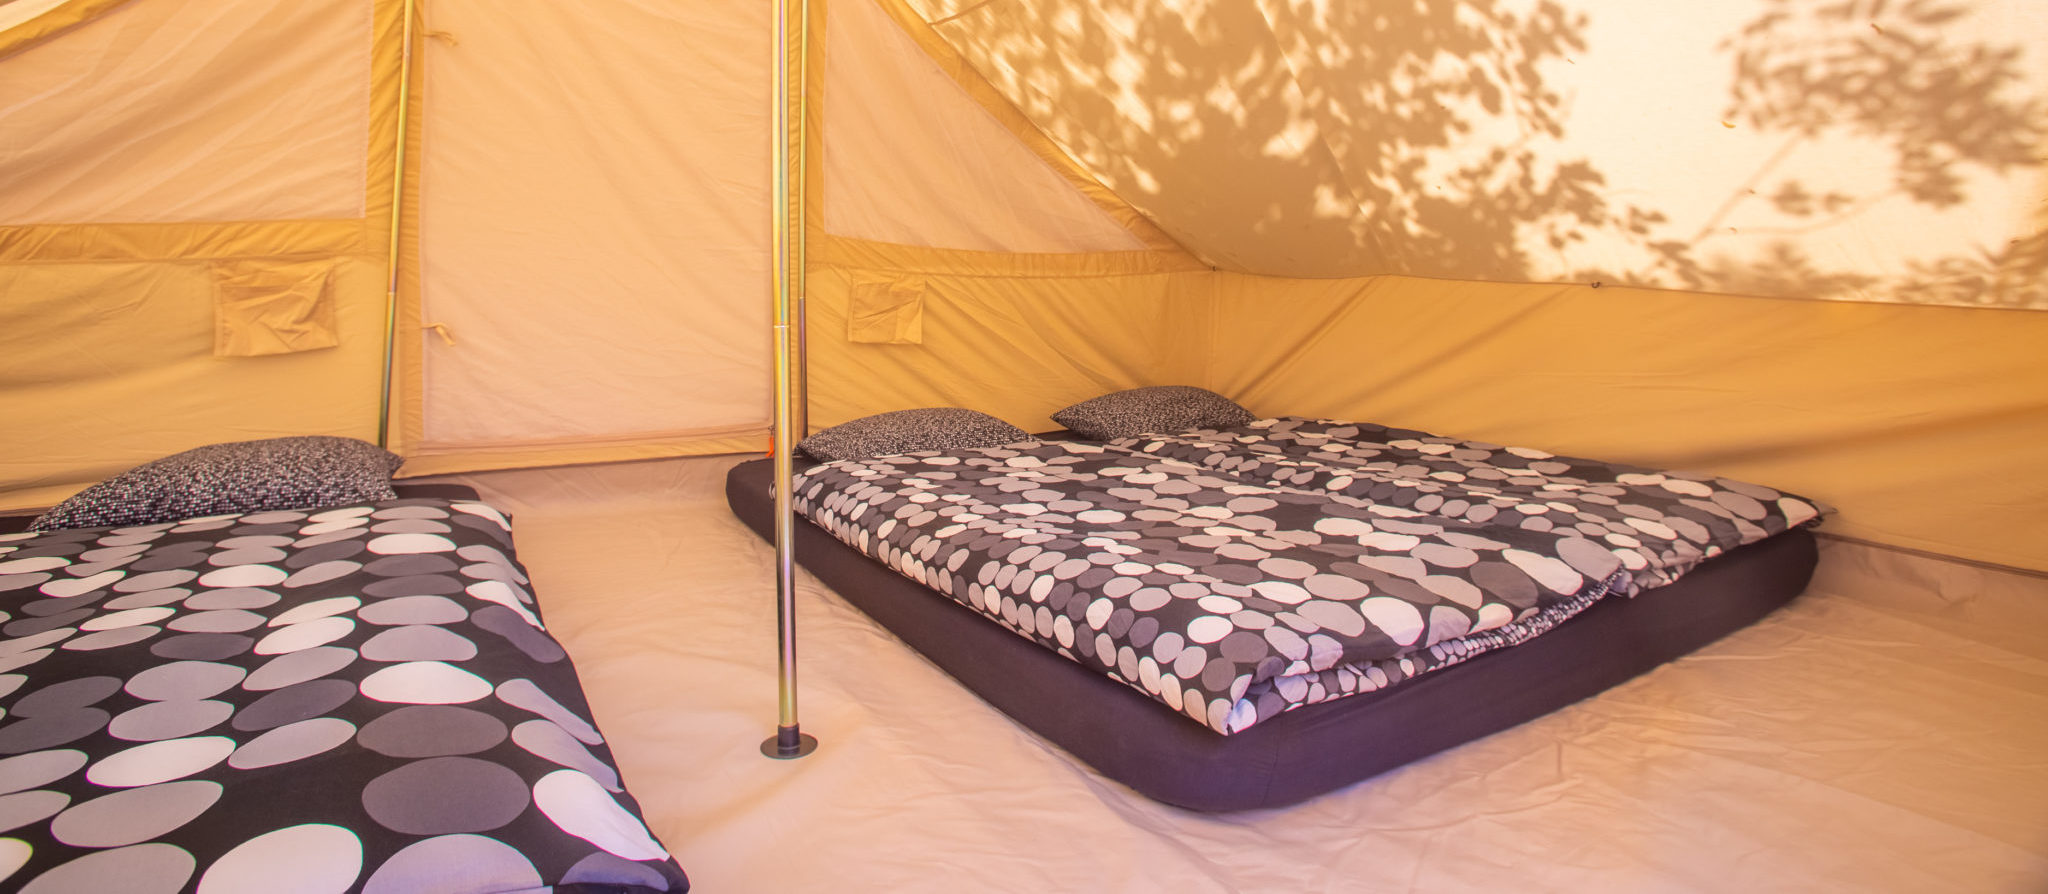 """With """"glamping,"""" you can go camping as extravagantly as you could possibly think of. Then again, is it really camping if you are not roughing it at least a little bit?"""